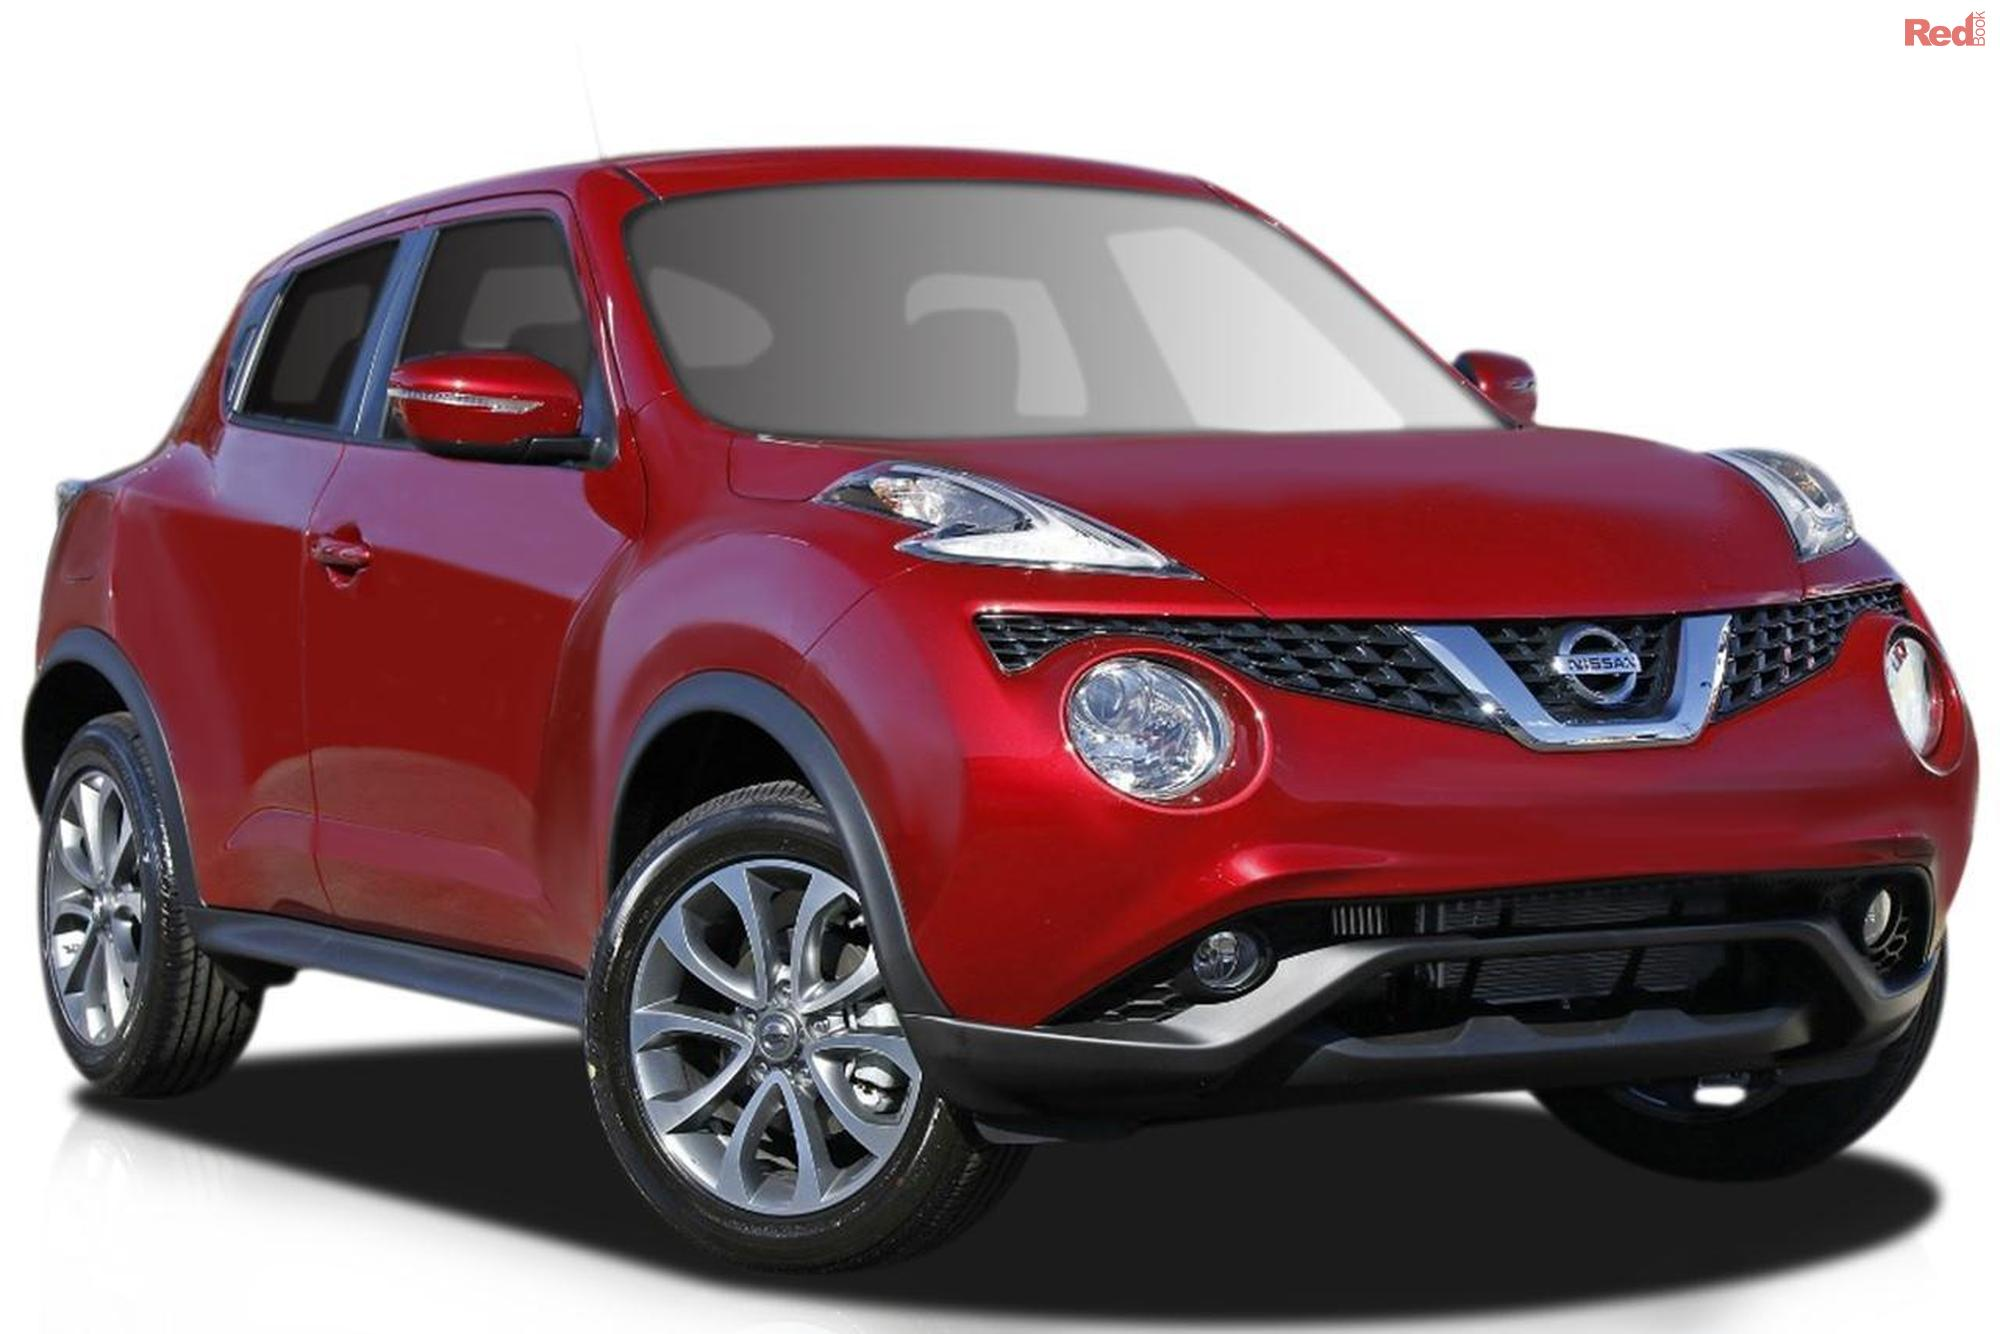 2018 nissan juke ti s constantly variable transmission. Black Bedroom Furniture Sets. Home Design Ideas